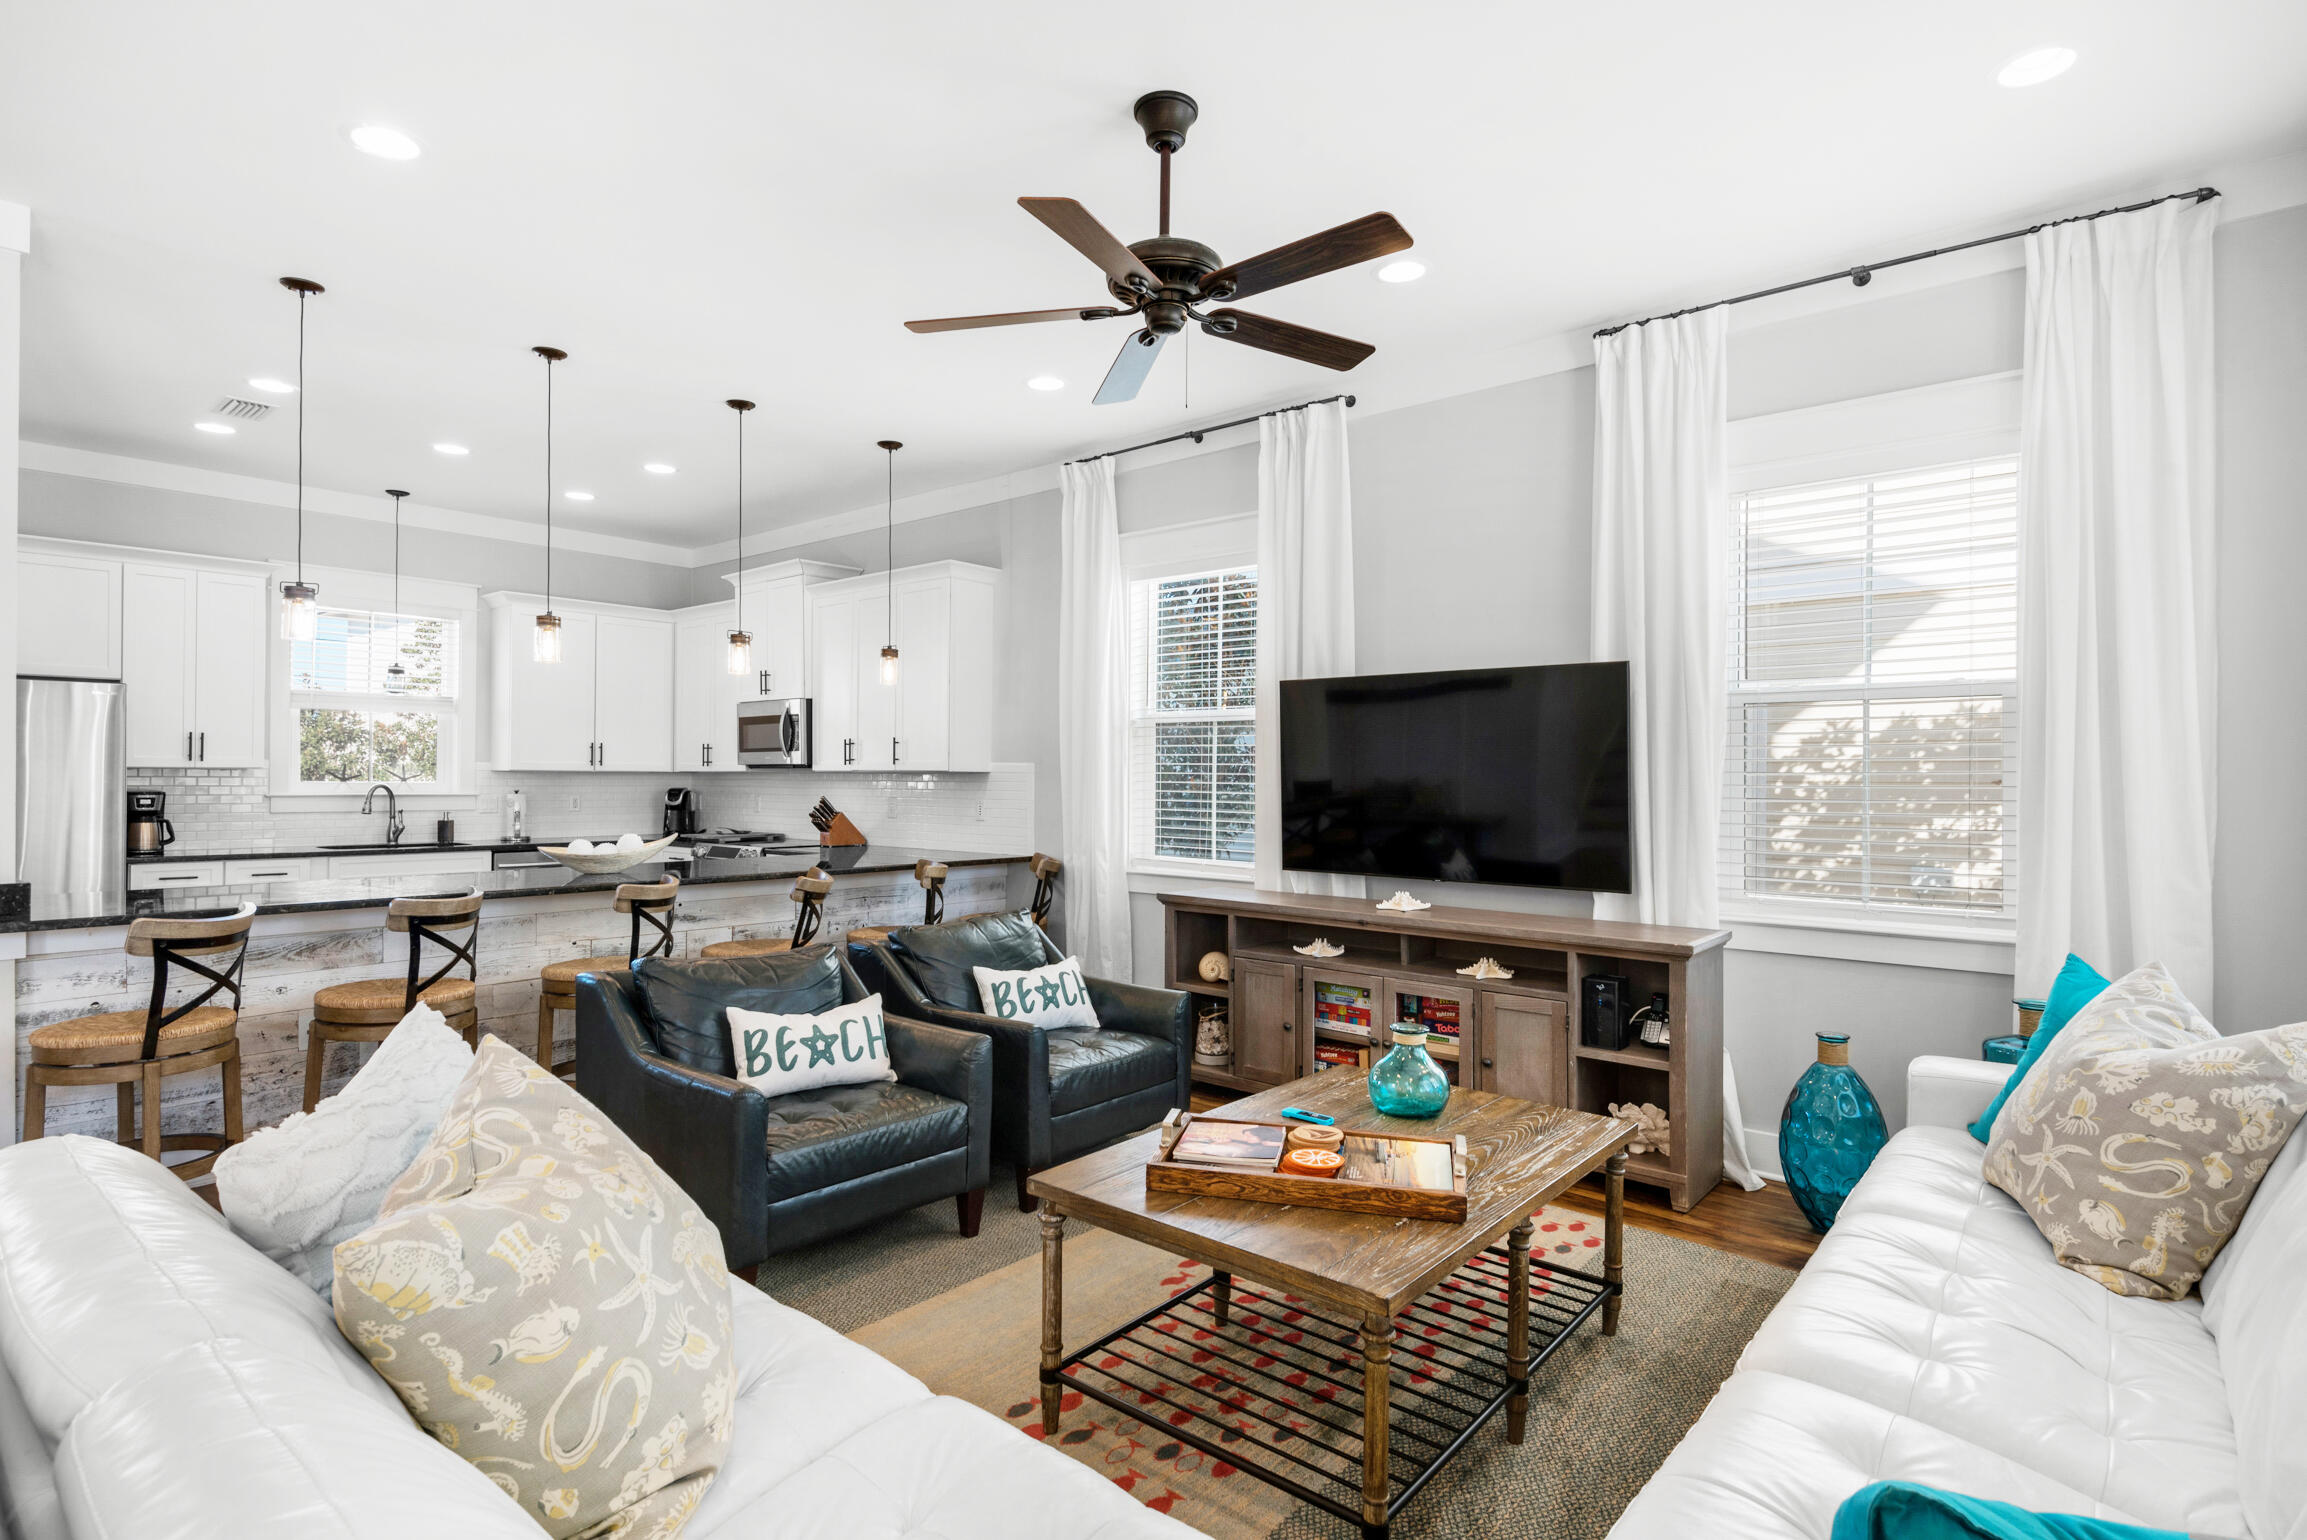 This exceptional Magnolia Dune home in Seagrove has it all! Built in 2015 and backing up to the community pool, this four bedroom (plus a bonus bunk room) home is the perfect spot for a 30A beach getaway. Park your vehicles in the large driveway and leave them there as 55 Sandalwood Drive is only a 0.2 mile walk away from the closest of two beach accesses as well as restaurants like 30A Cafe, Angelina's, and the Donut Hut. Upon entering the home guests will notice the large open floor plan layout of the kitchen, living, and dining areas. The dining table has seating for ten with additional seating for six at the large kitchen counter. The thoughtfully appointed furnishings in the living area make it a great place to unwind and relax after a long day at the beach while the chef's kitchen offers ample counter and storage space for the cook in your party. The first floor also features a laundry room with twin stacked washer/dryer units, owner's lockout closet (one on all three floors of the home), a half bathroom, and access off of the kitchen to the rear deck and outdoor dining area which is conveniently located adjacent to the beautiful community pool.  The master bedroom and two guest bedrooms are located on the second floor of the home. Each bedroom has its own ensuite bath and both the master and the eastern guest bedroom have direct access to the large shared second floor balcony.   The third floor consists of the fourth bedroom with two twin over twin trundle beds and a bonus bunk area - both share the full bath via Jack and Jill access. The third floor balcony is a great place for morning coffee or an evening cocktail as one can catch a glimpse of the emerald green water of the Gulf of Mexico.  55 Sandalwood Drive is the ideal blend of comfort and convenience and a perfect choice for a second home or rental property located right in the heart of 30A in Seagrove.